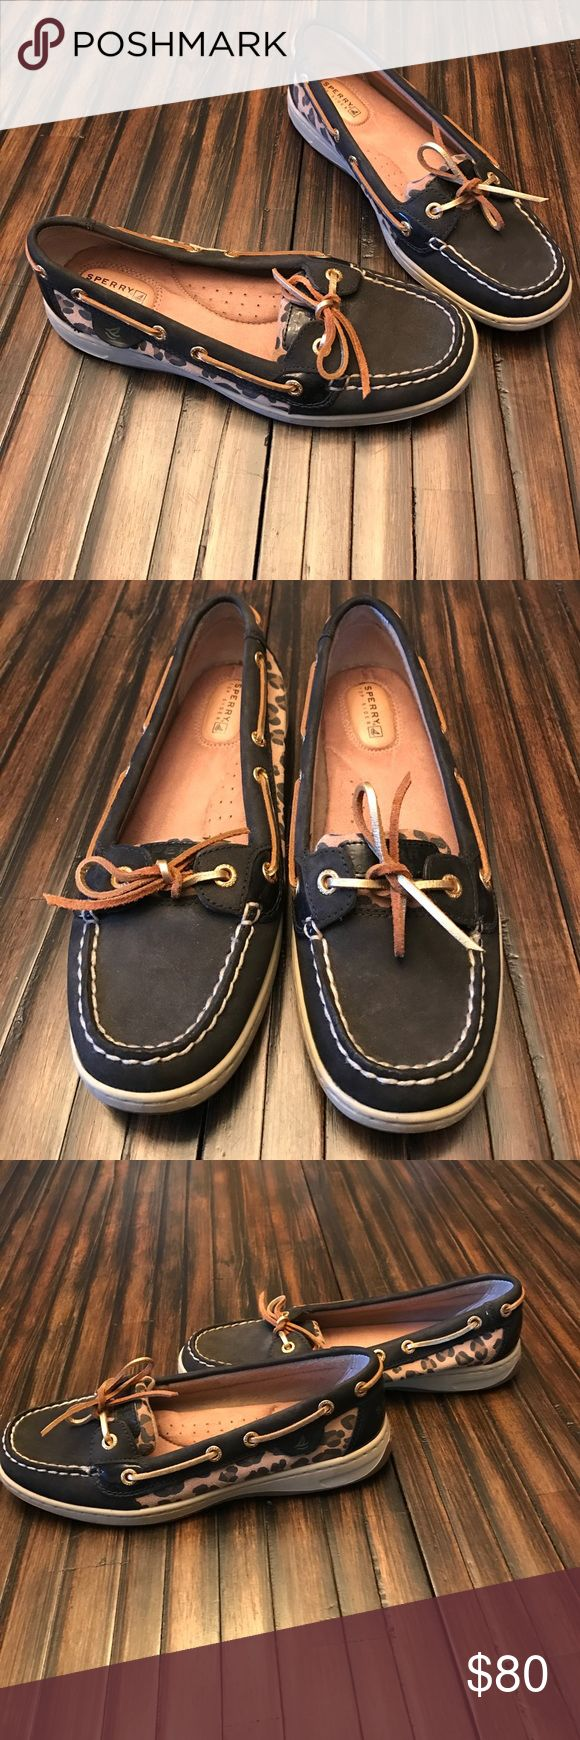 Black & Leopard Sperrys Black Sperrys with leopard on sides and tongue. Worn once for a few hours. Like new! Sperry Top-Sider Shoes